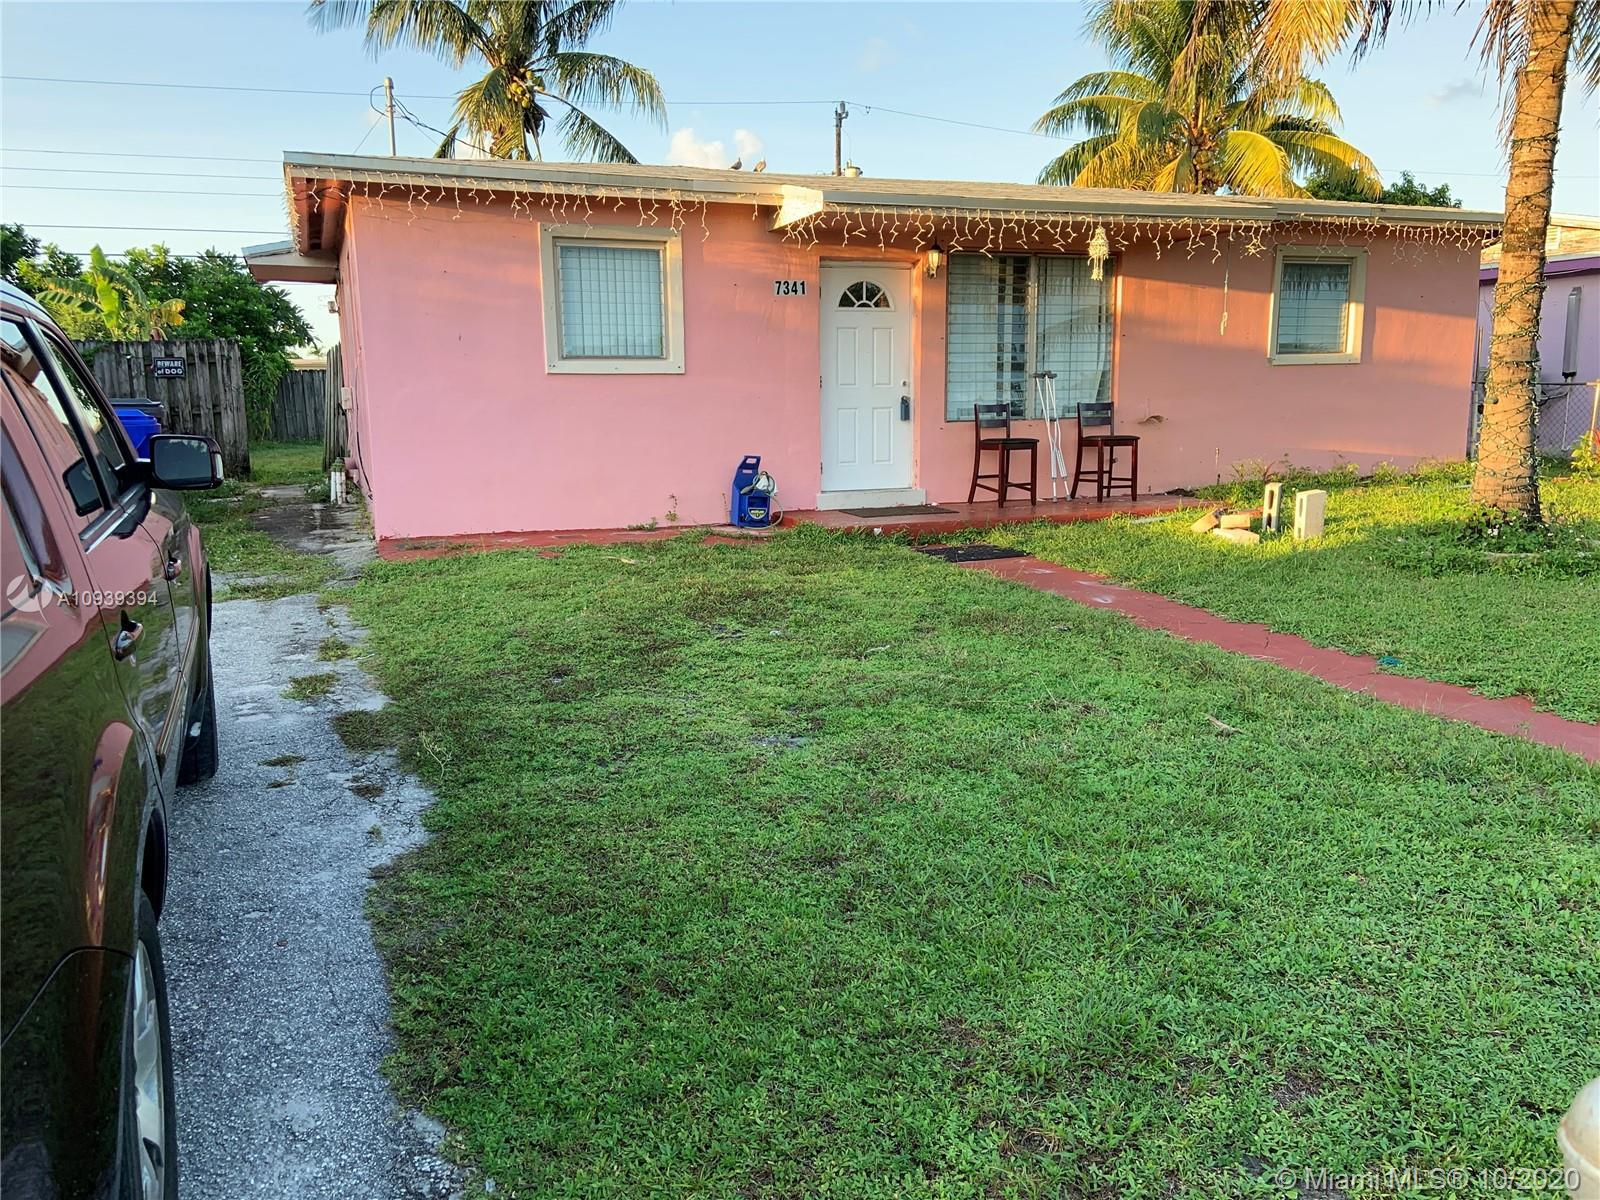 WOW! New shingle roof. Great buy for a first-time buyer or an investor. Motivated seller. Possible s